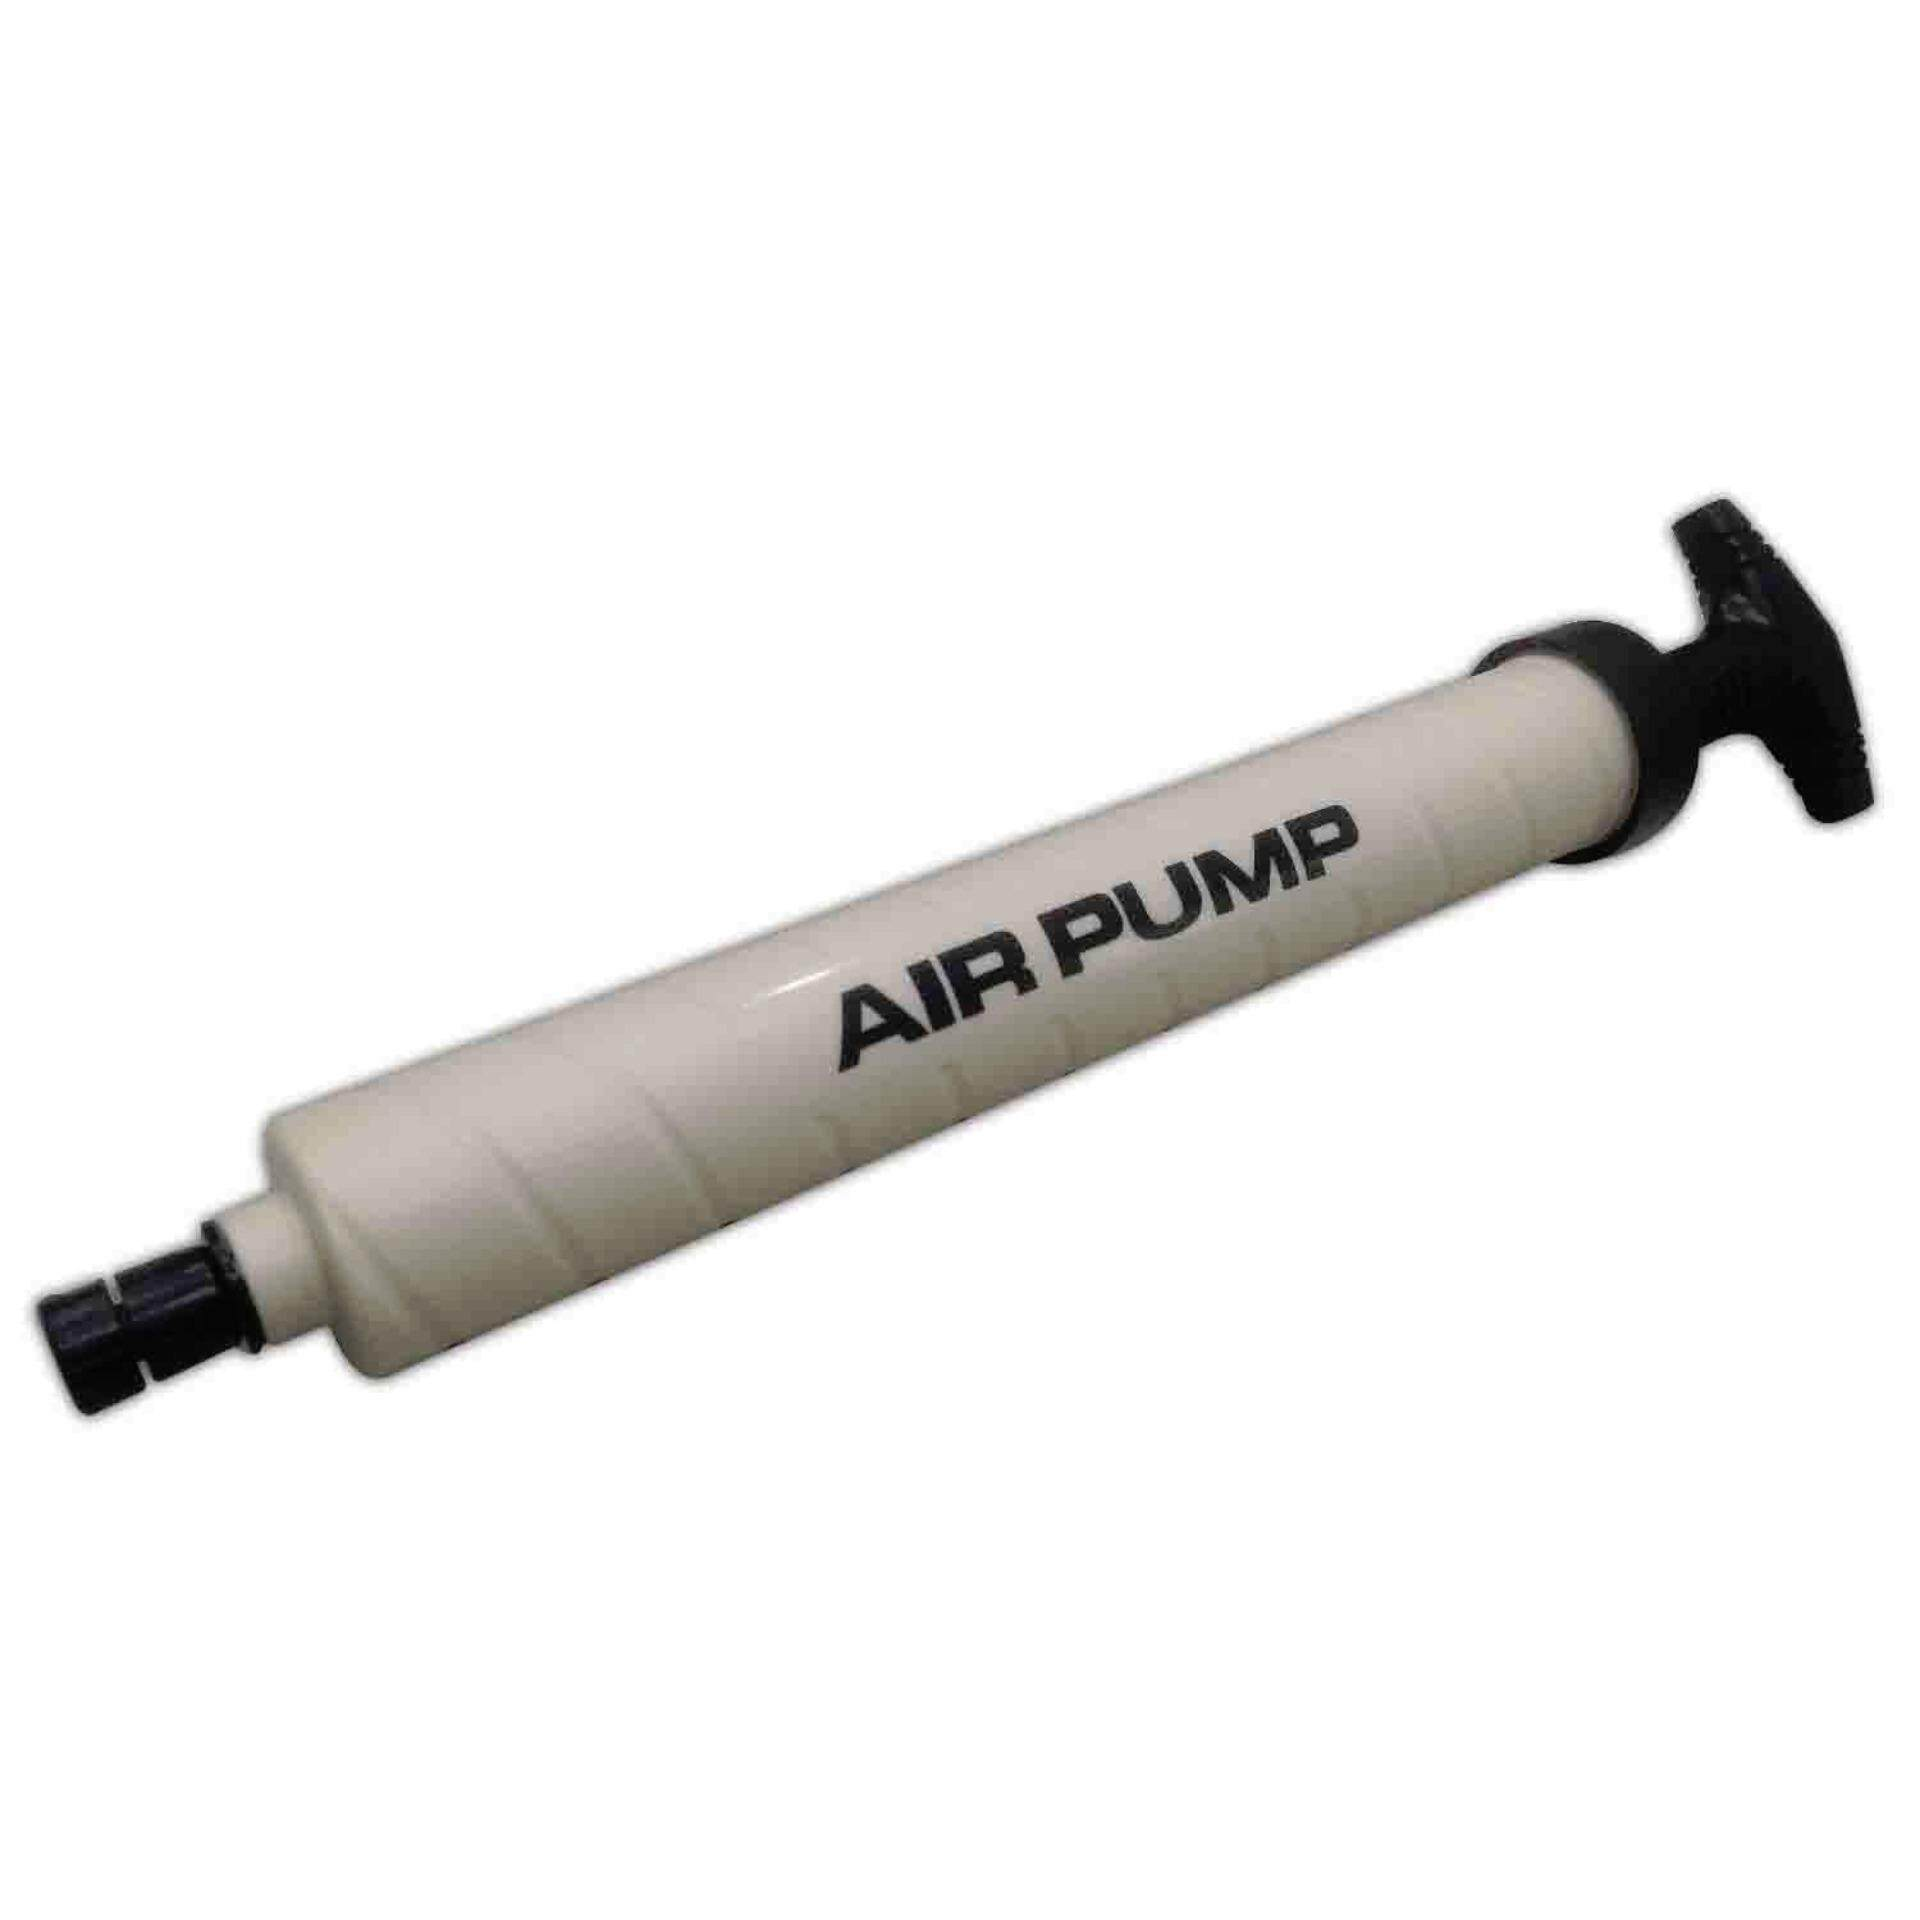 Portable High Pressure Double Action Hand Pump